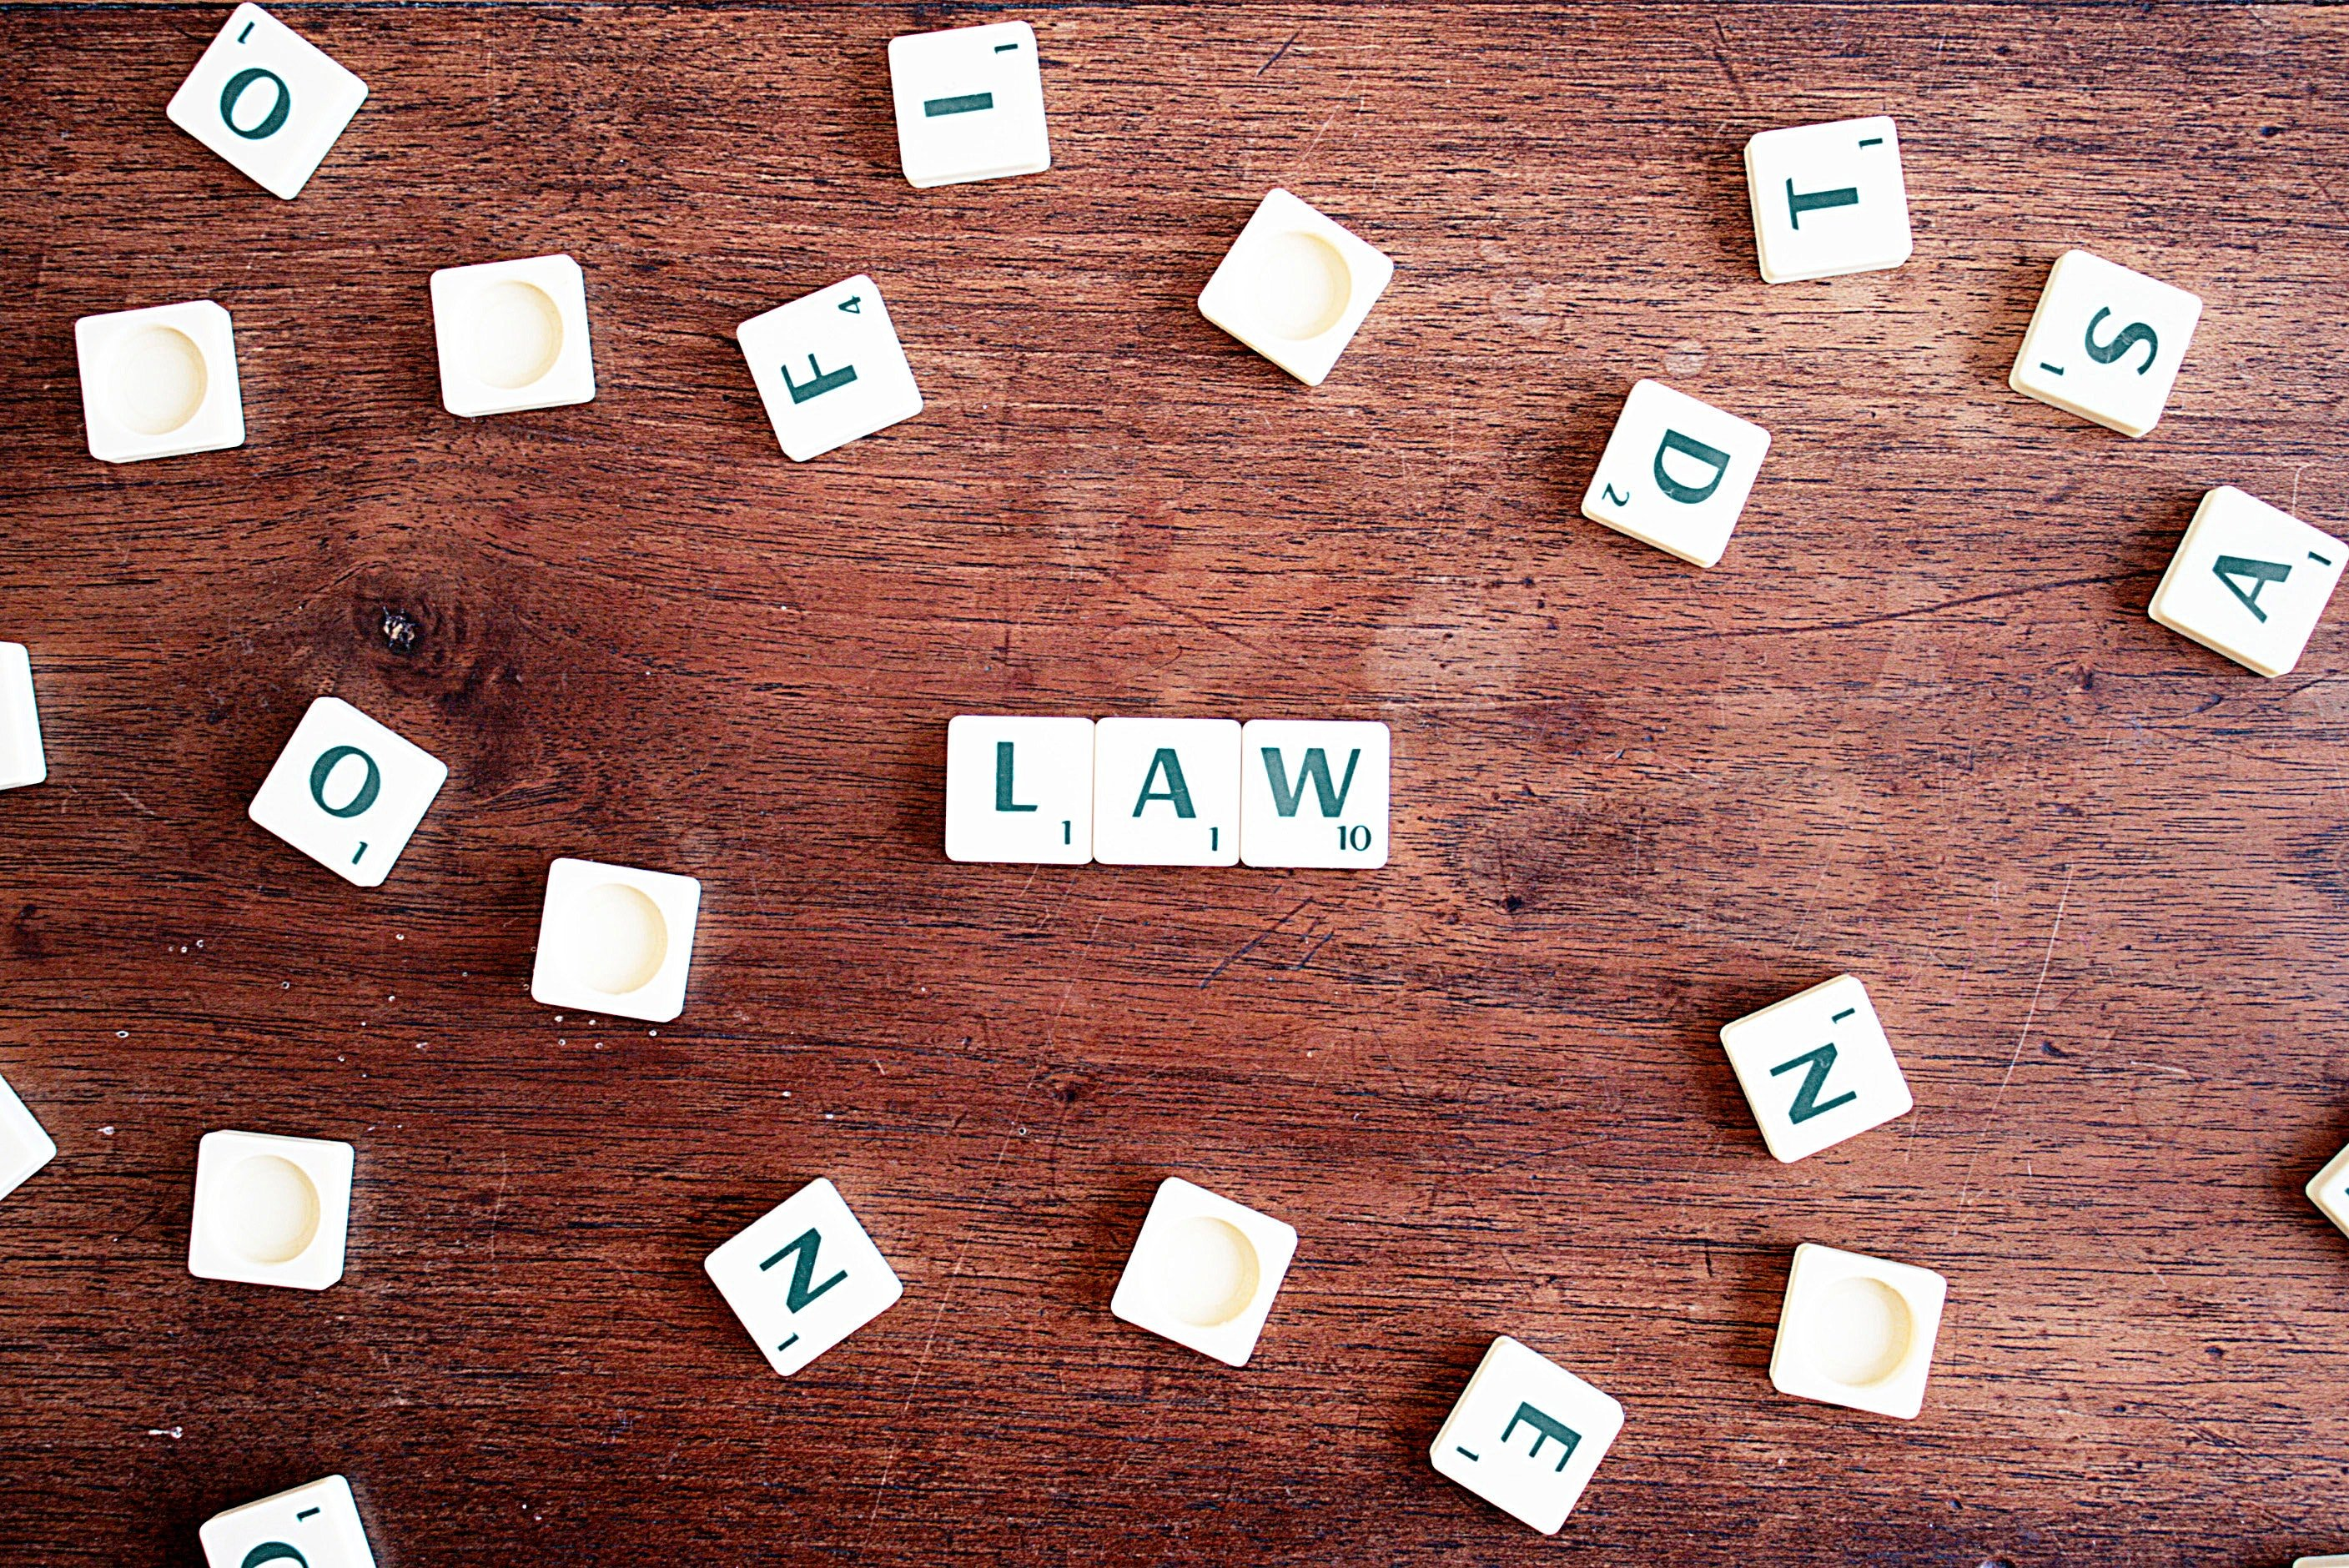 5 Employment law developments your business needs to be aware of this year